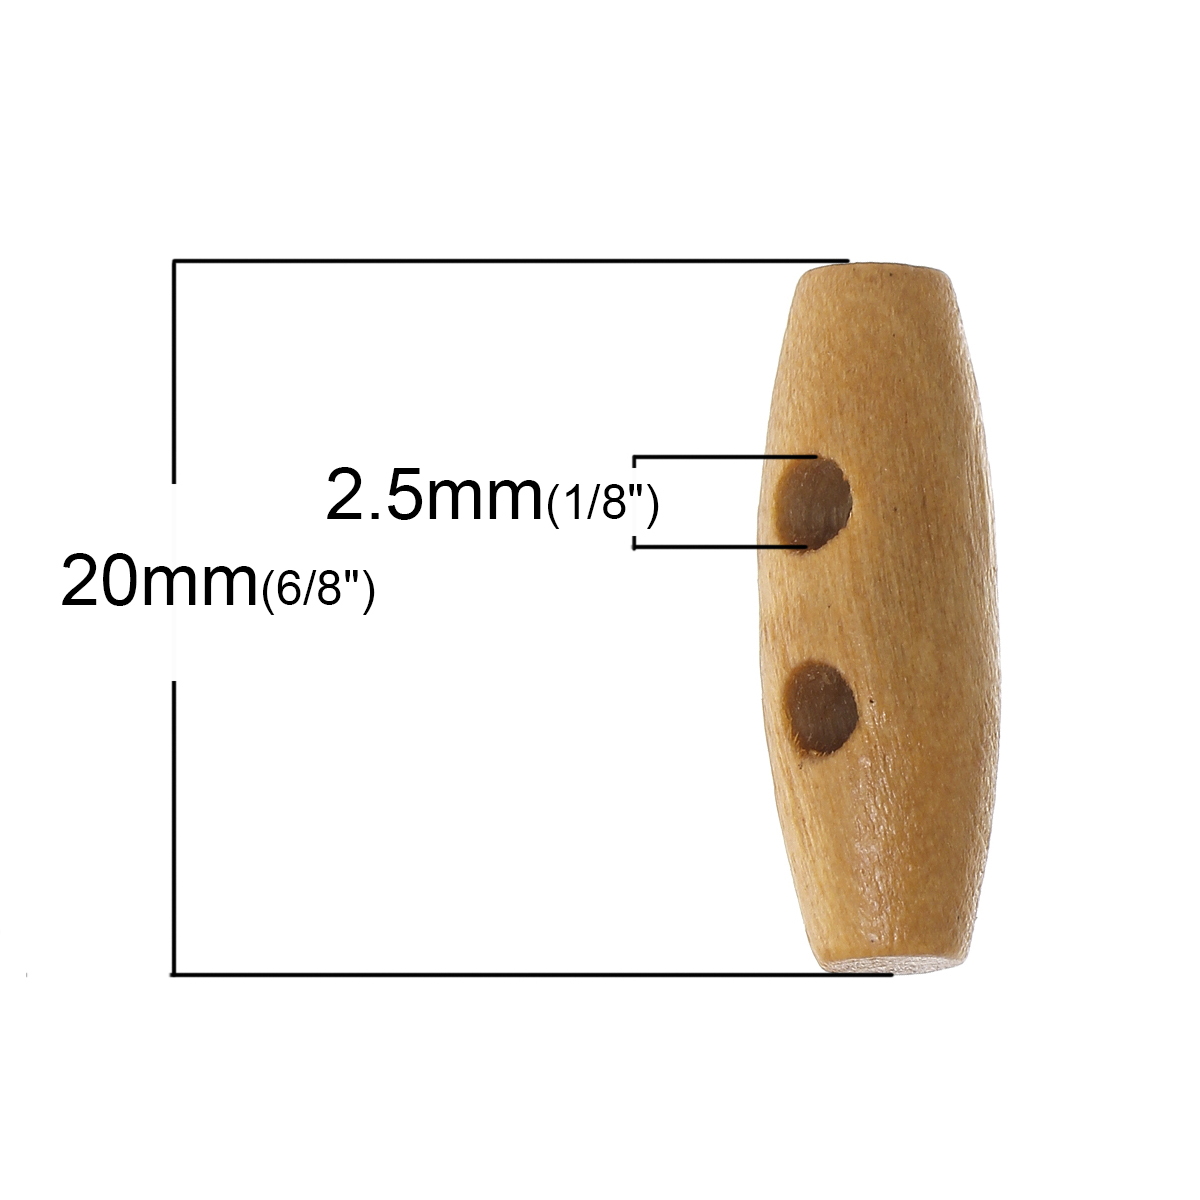 100PCs Brown wood buttons Sewing Horn Toggle Buttons For Coat Cloth Accessories Craft DIY And Scrapbook Decoration 20 x7mm